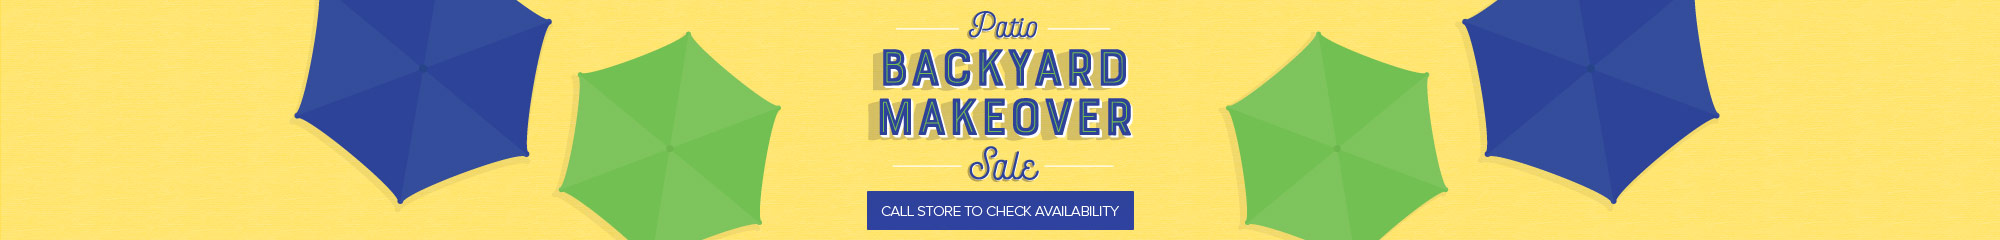 Backyard Makeover Patio Sale